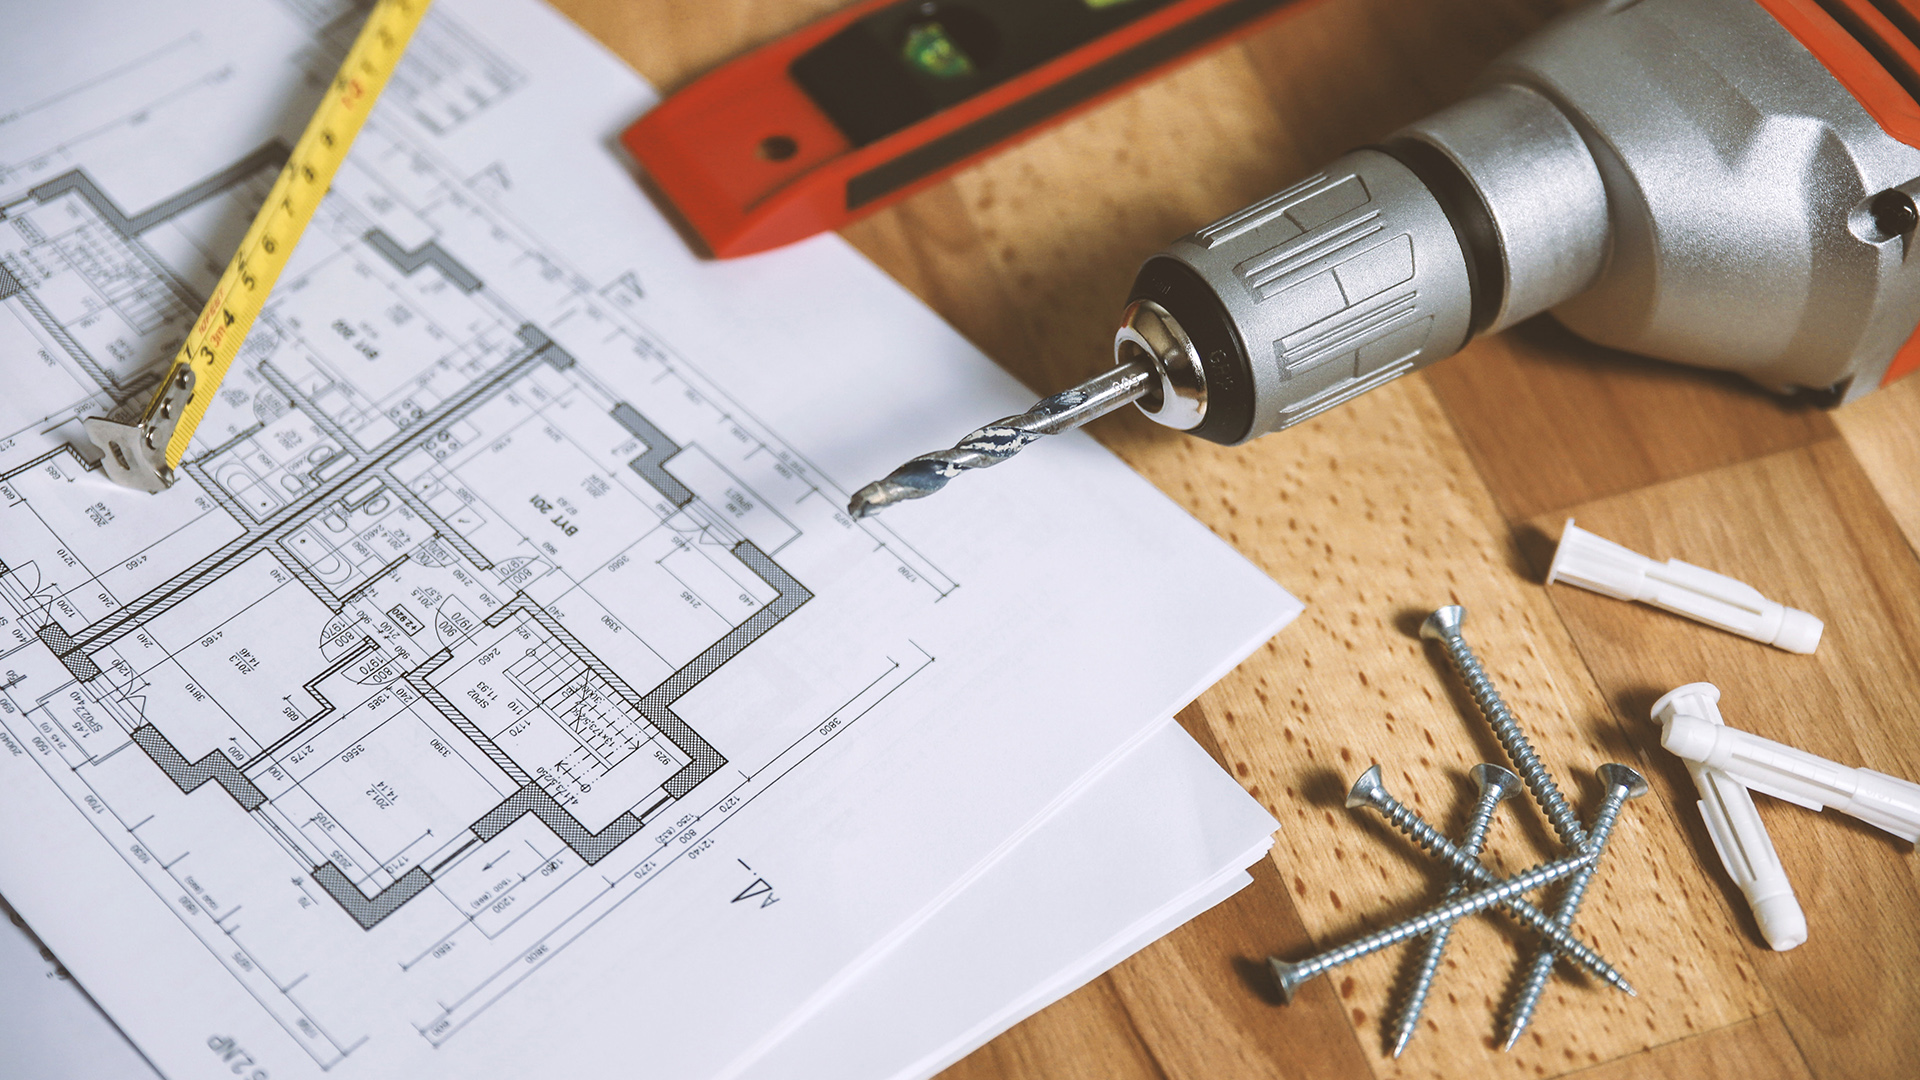 Drill, screws and floor plan